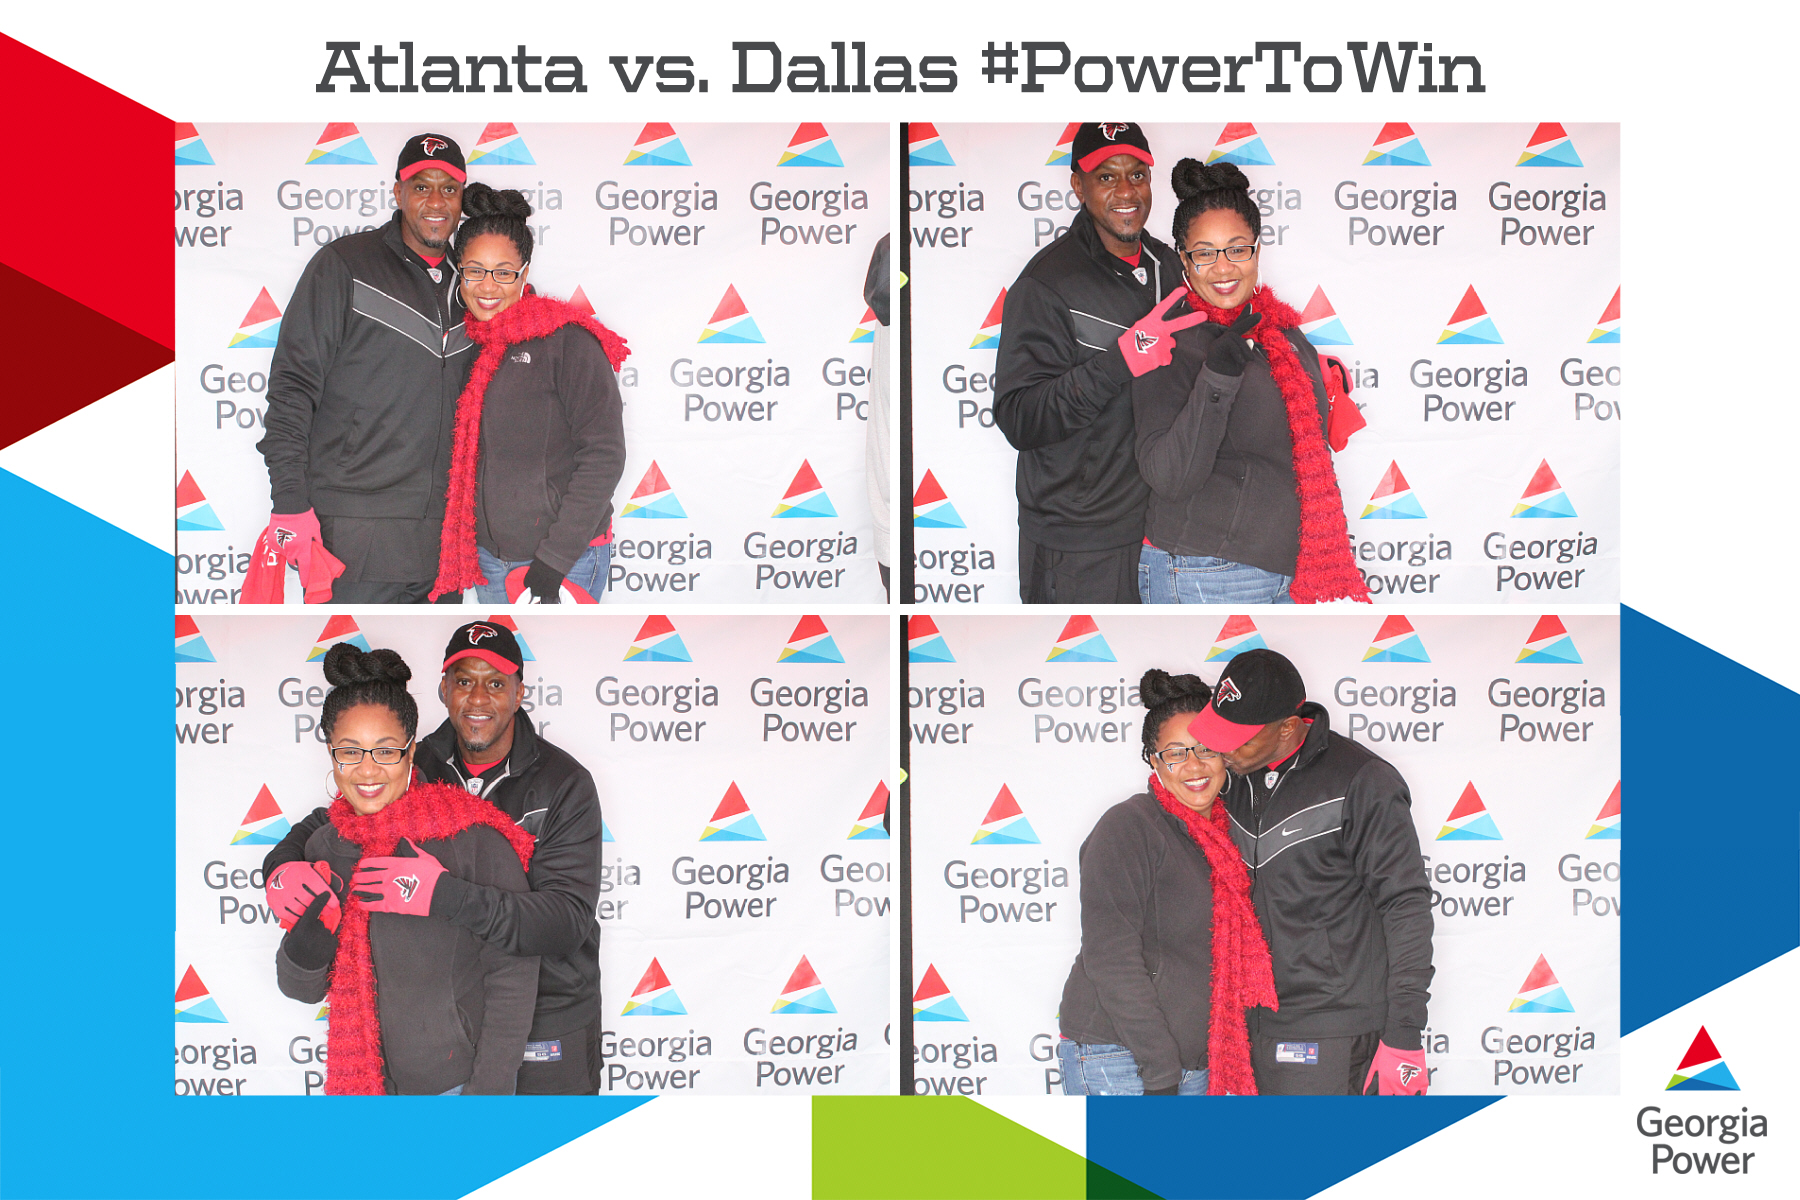 ATL vs DAL #PowerToWin (4in1)